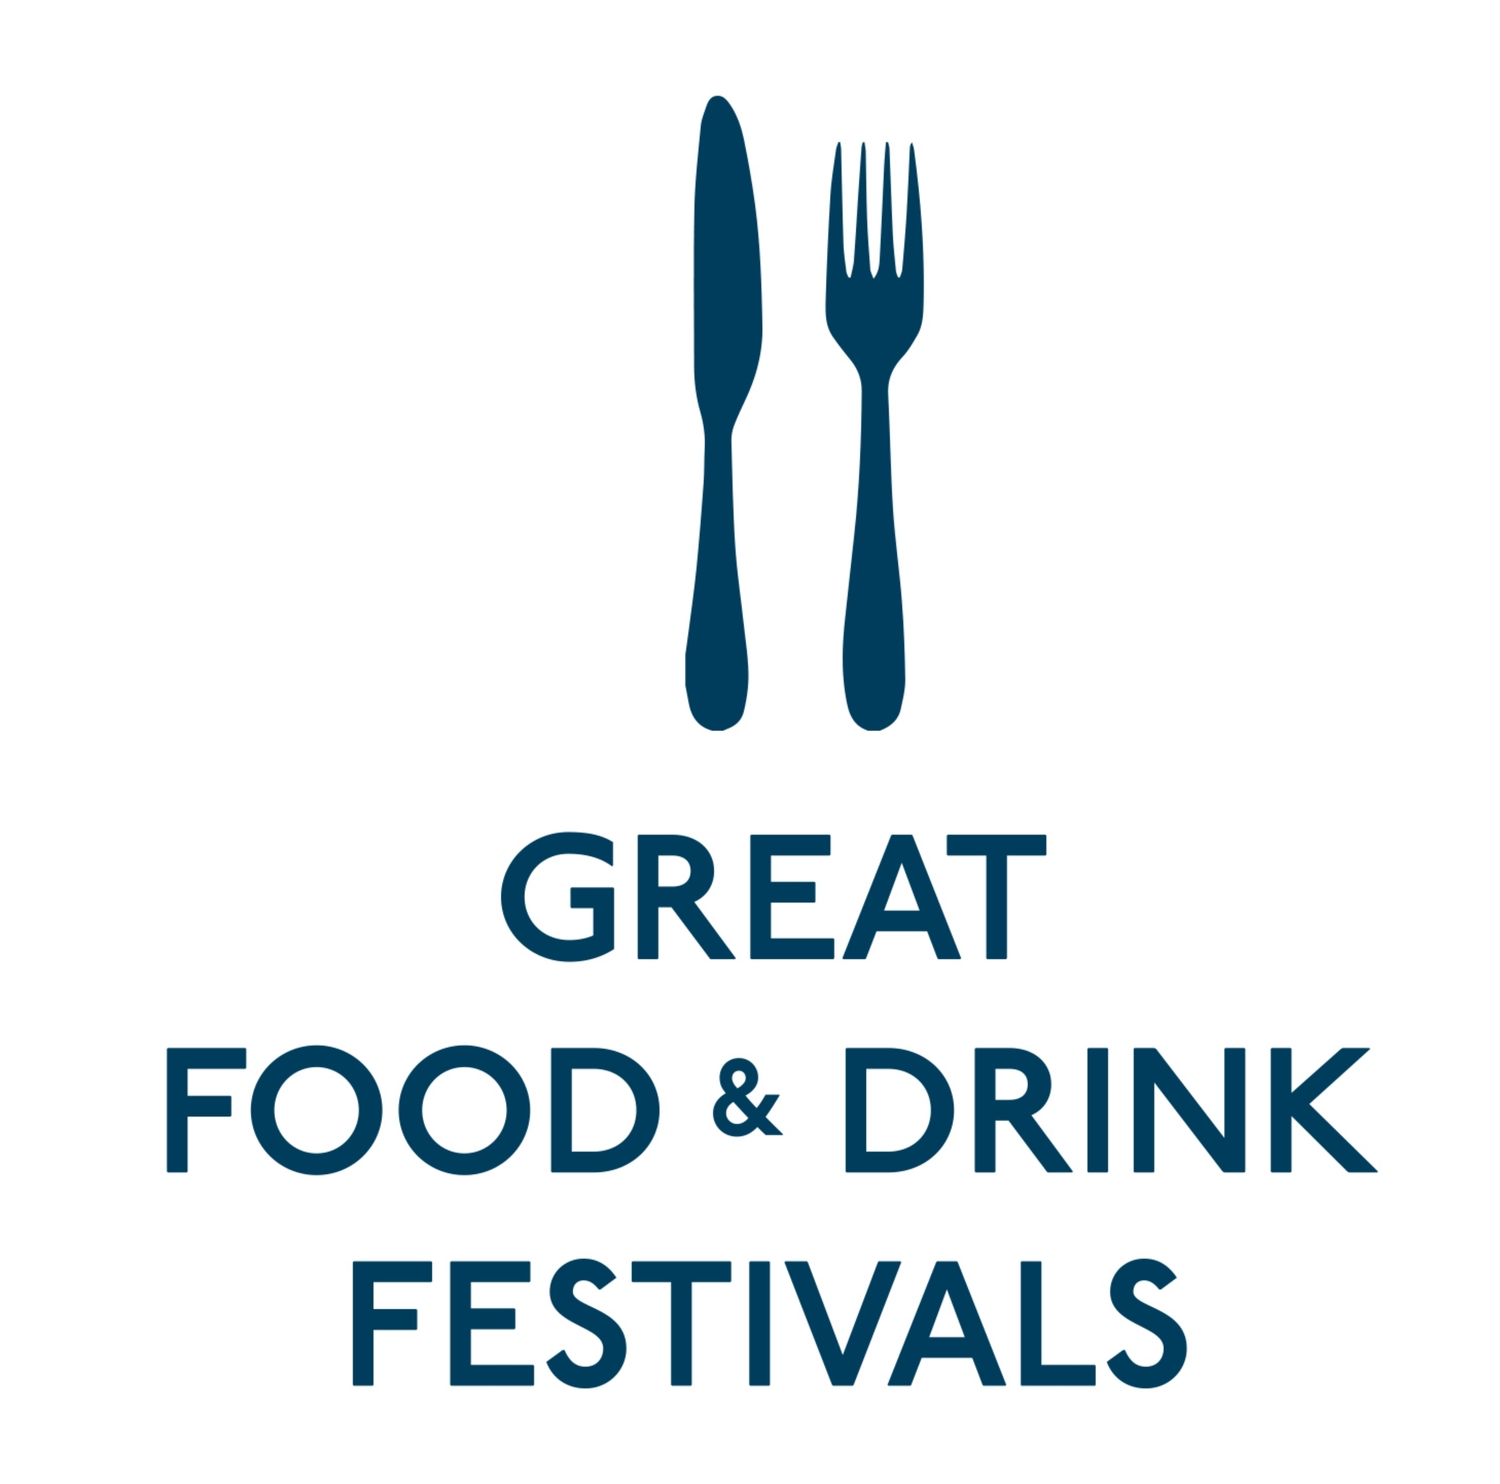 The Great Food And Drink Festivals